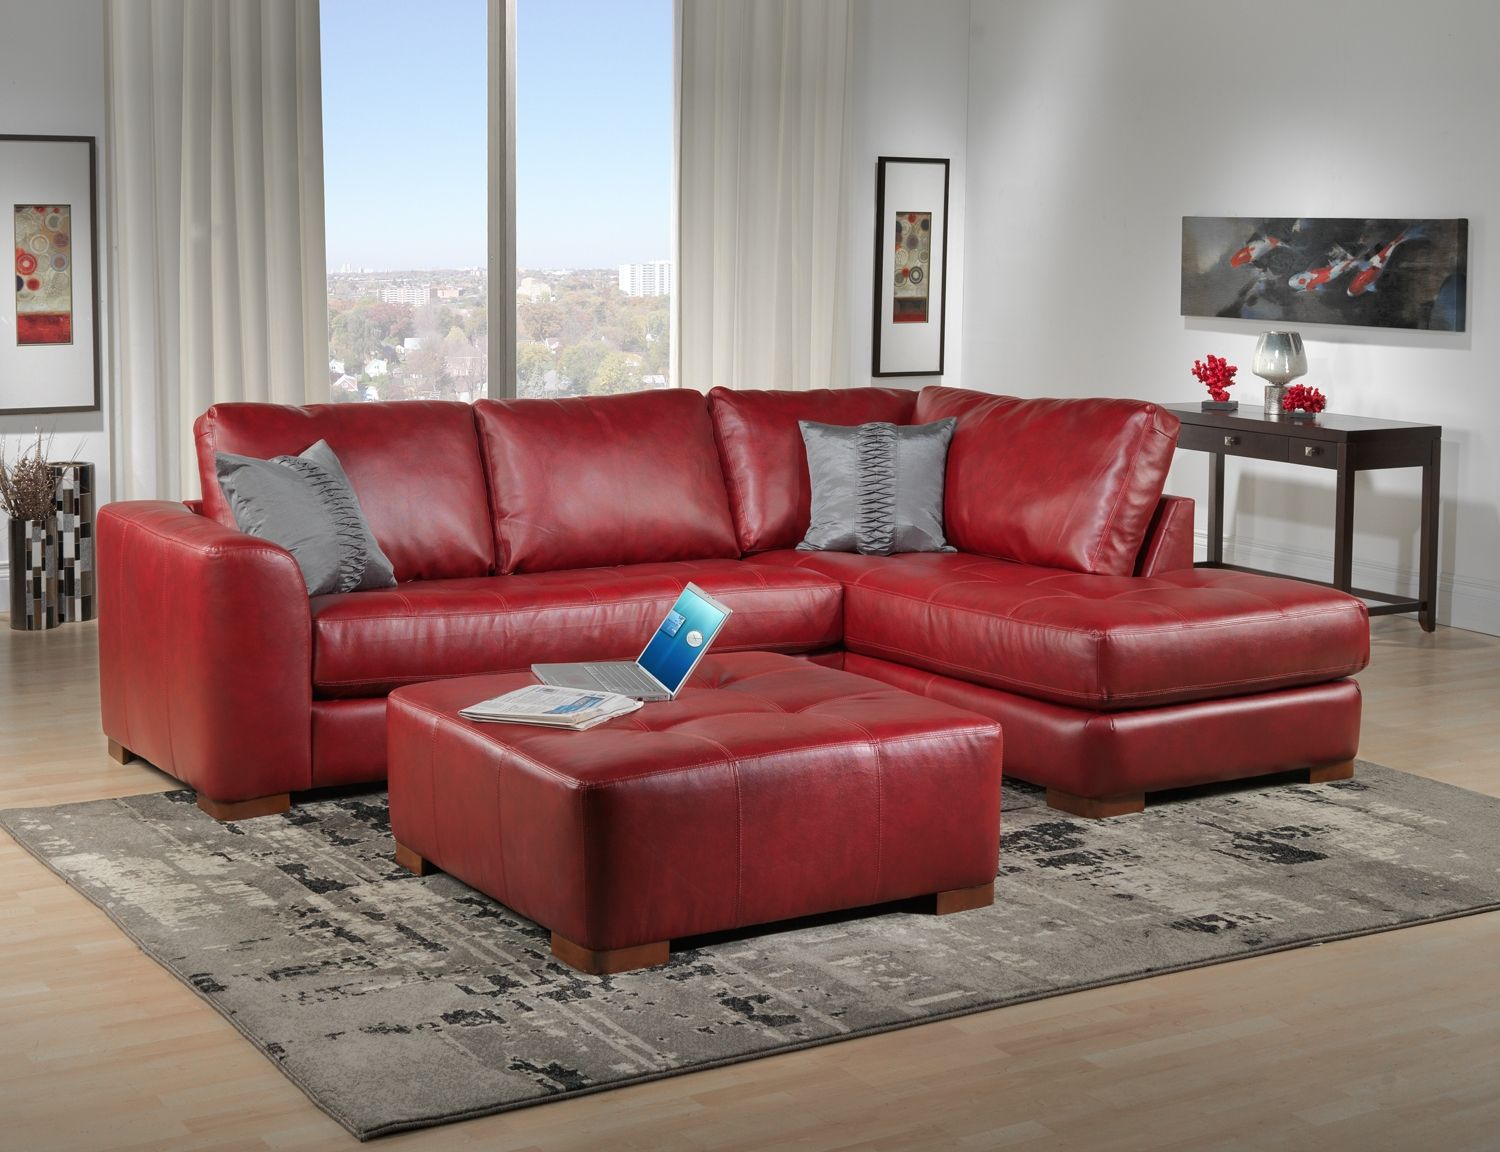 Living Room With Red Sofa 25 Best Ideas About Red Leather Couches On Pinterest Living